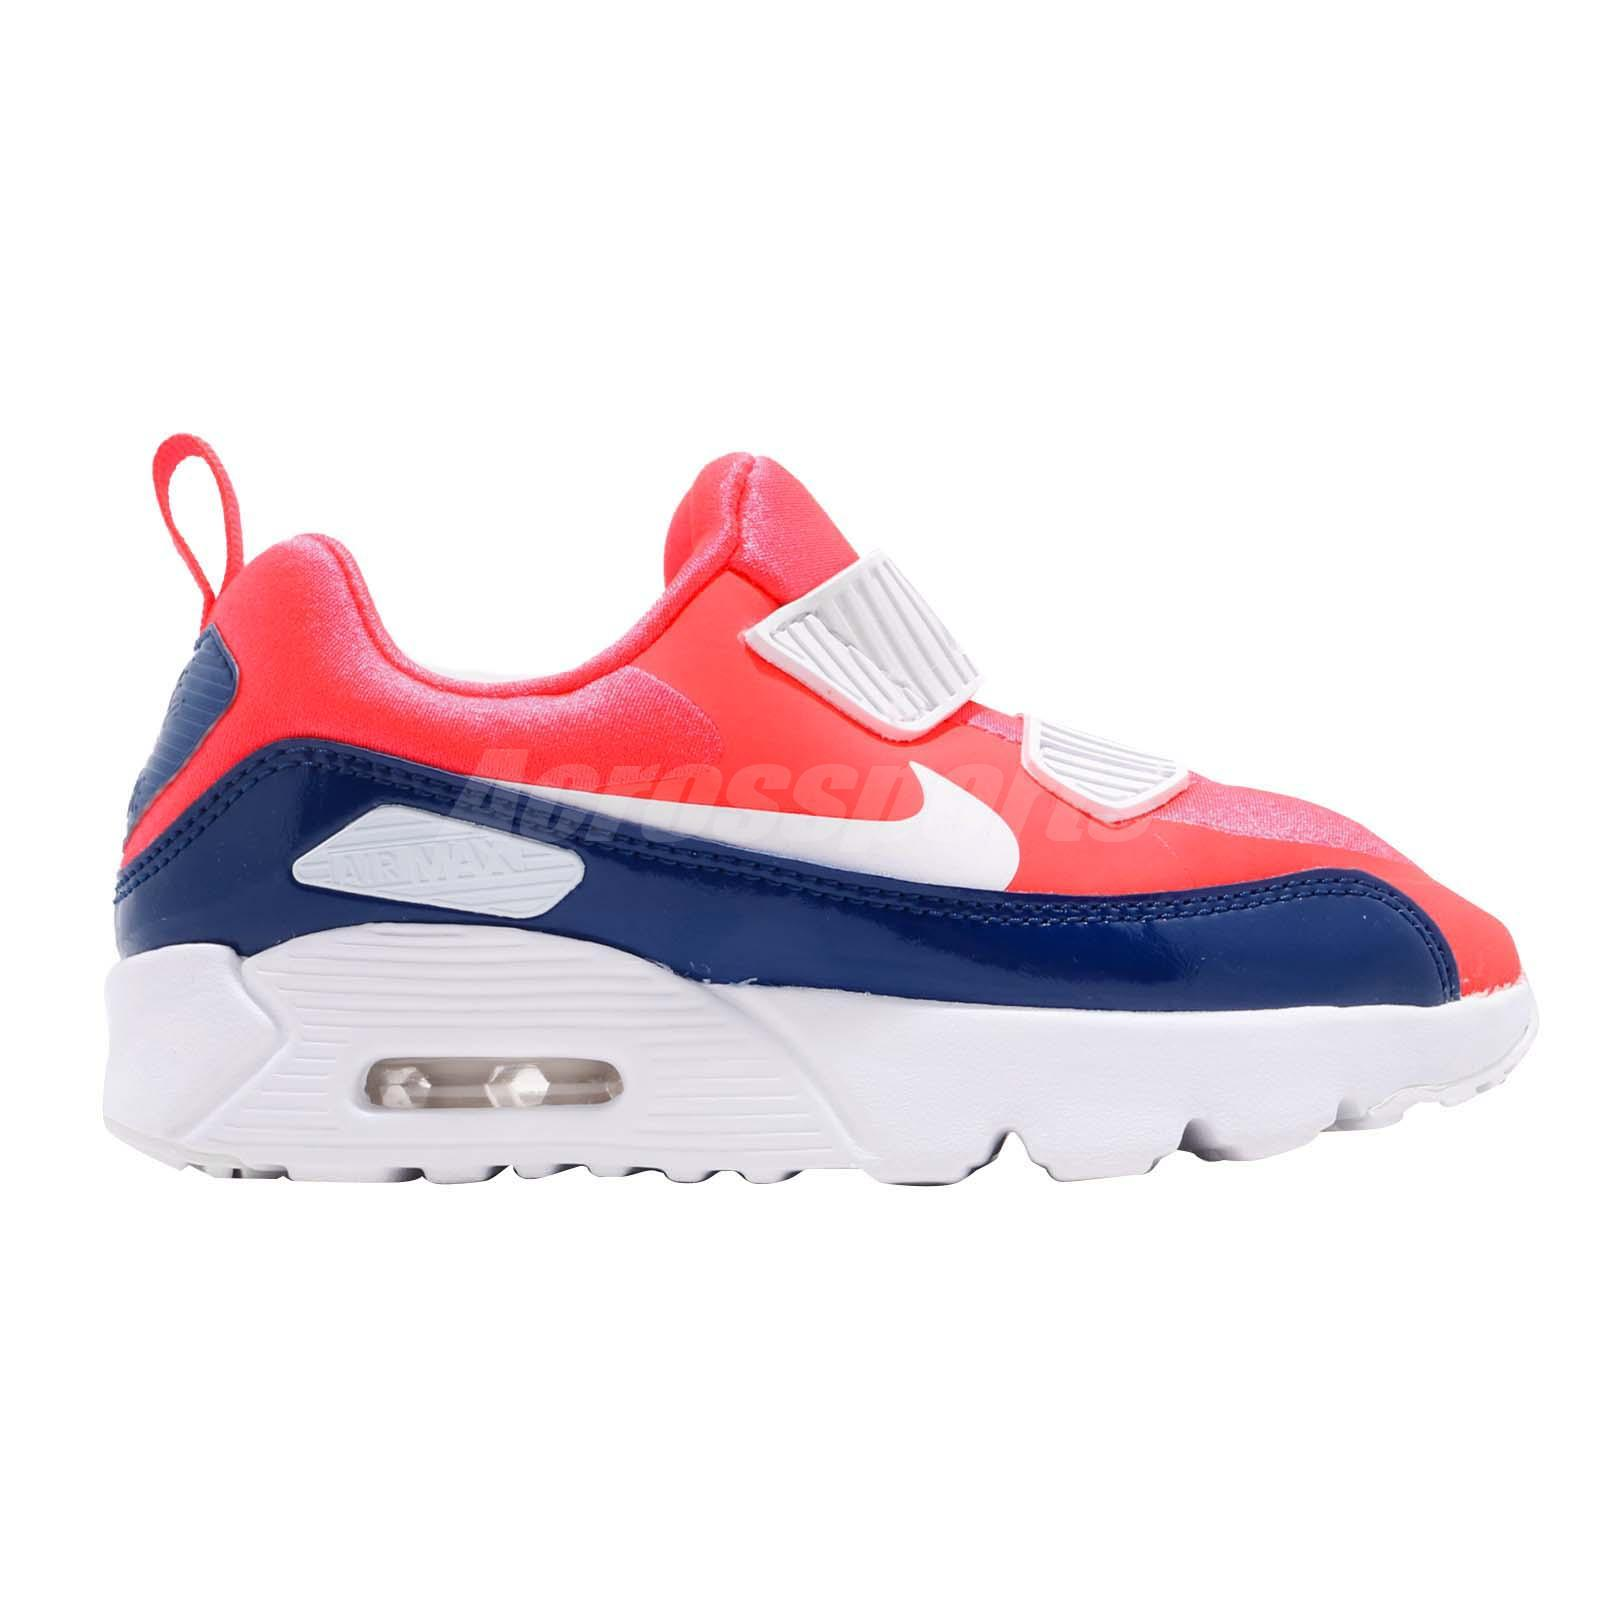 low priced 63466 a6afd Nike Air Max Tiny 90 PS Bright Crimson Kid Preschool Slip On Shoes ...